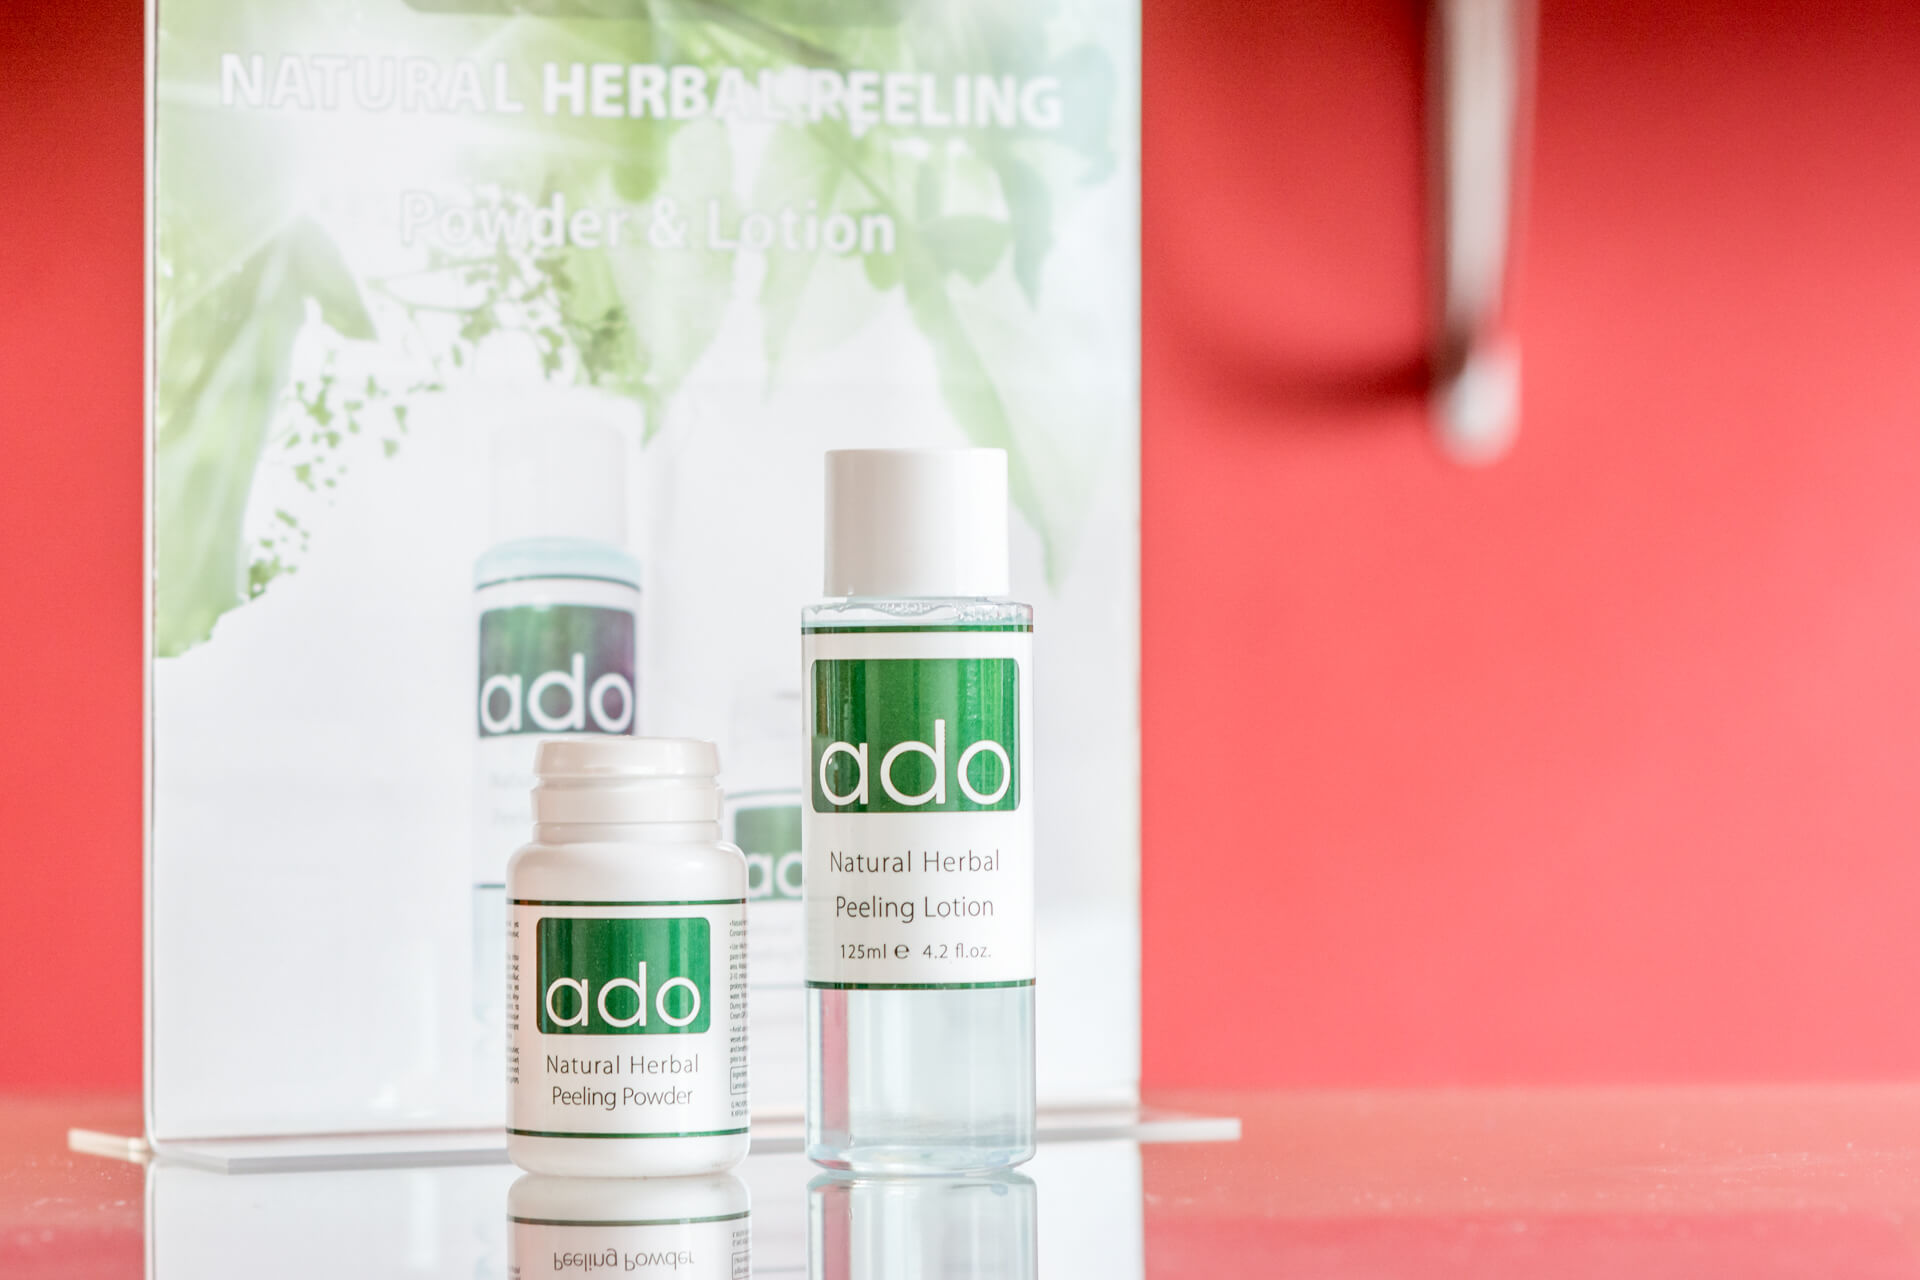 Beautysalon Davida Ado Natural Herbal Peeling